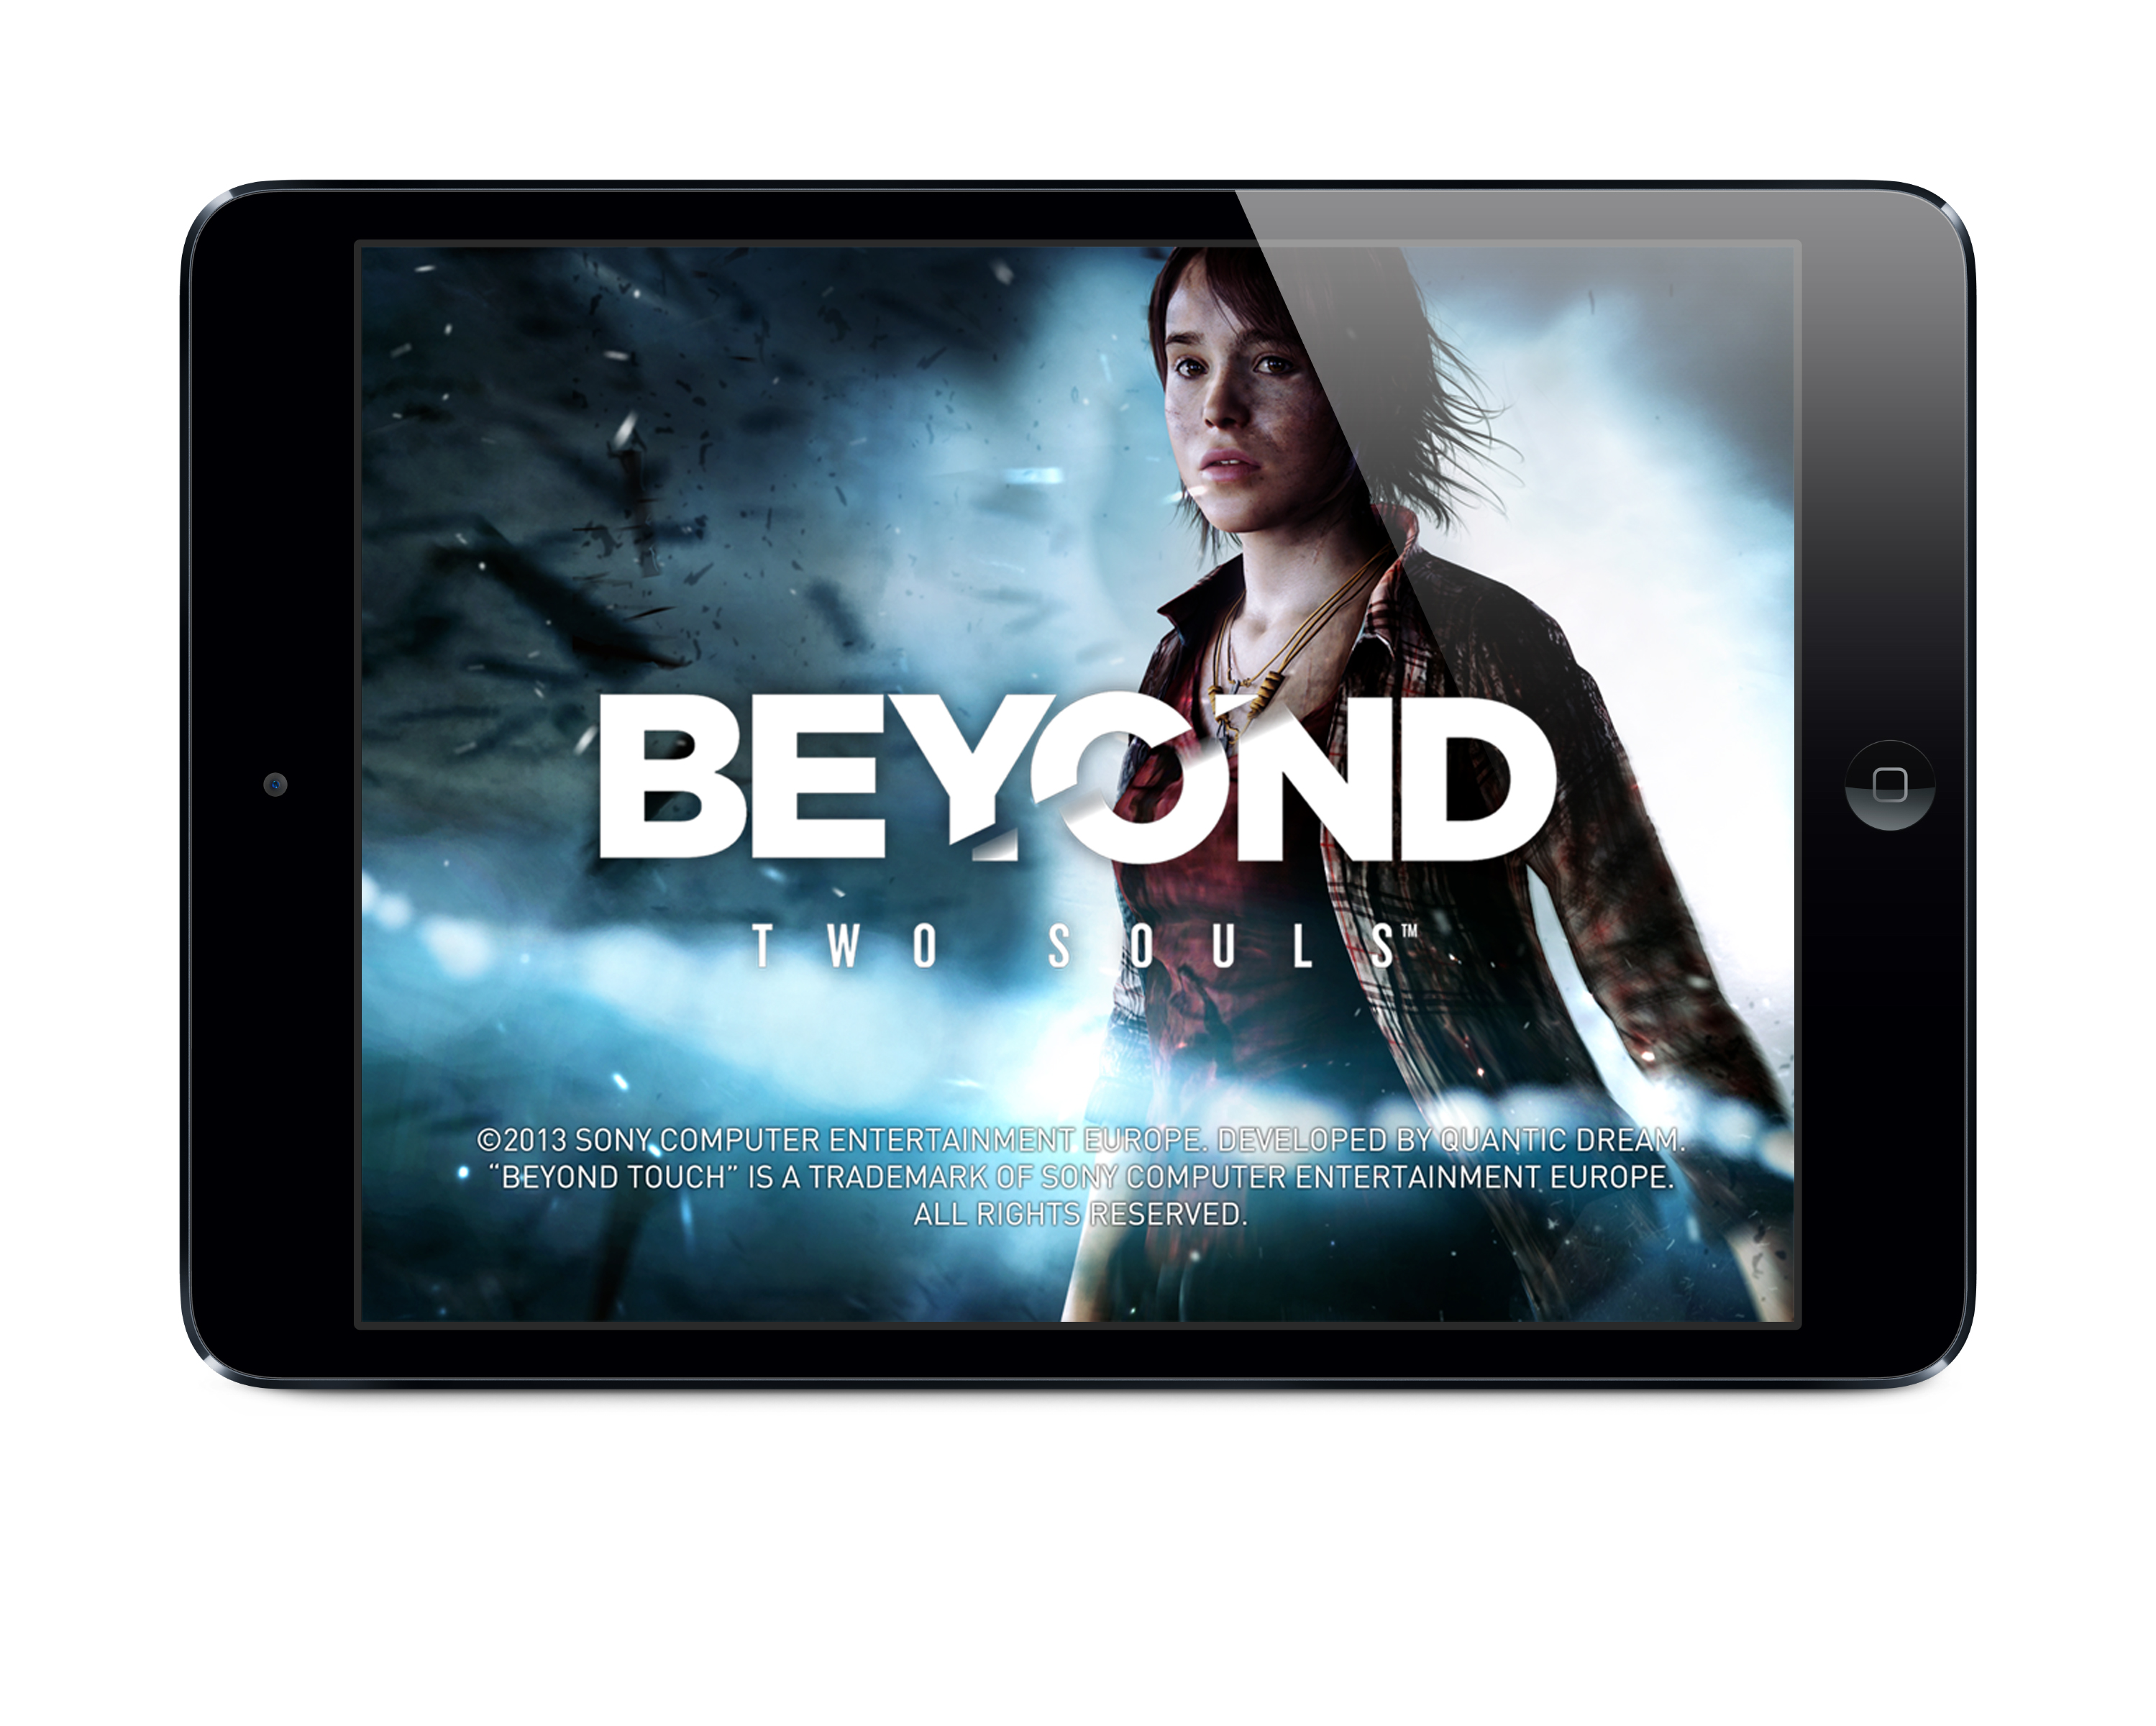 How to play Beyond: Two Souls with your iOS or Android device